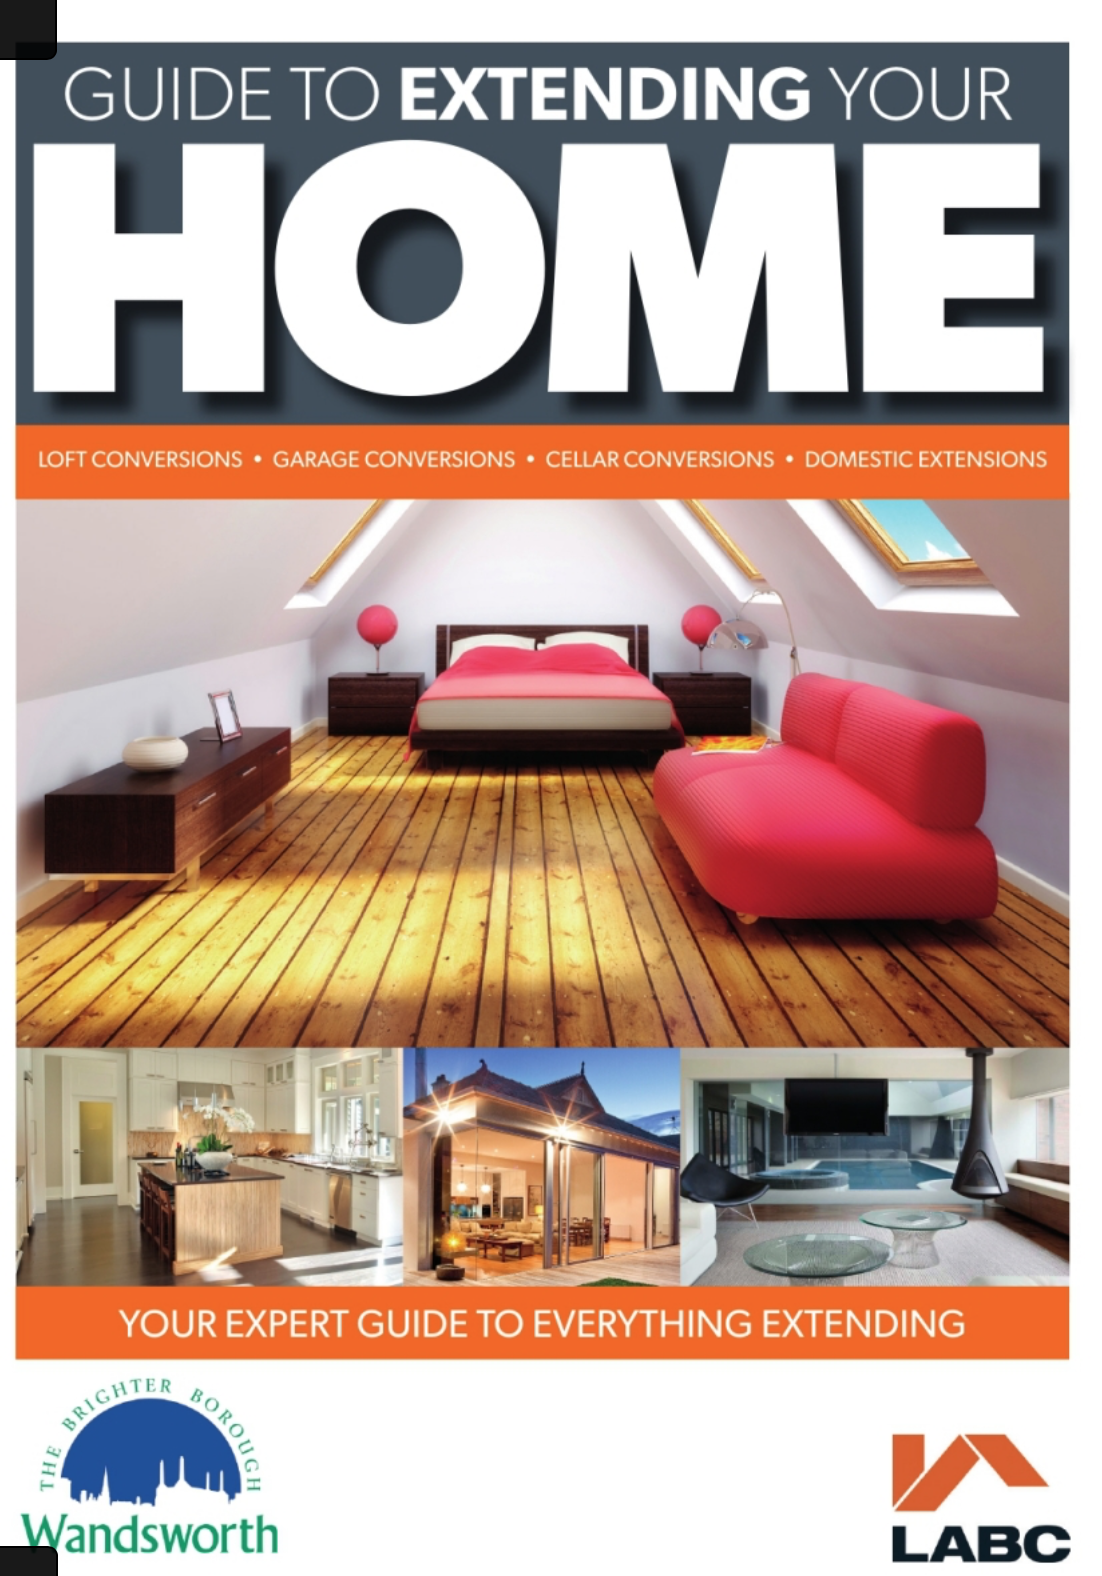 Mongan Contractors were featured in the Wandsworth Guide to Extending Your Home. - Click the image to see the full magazine.